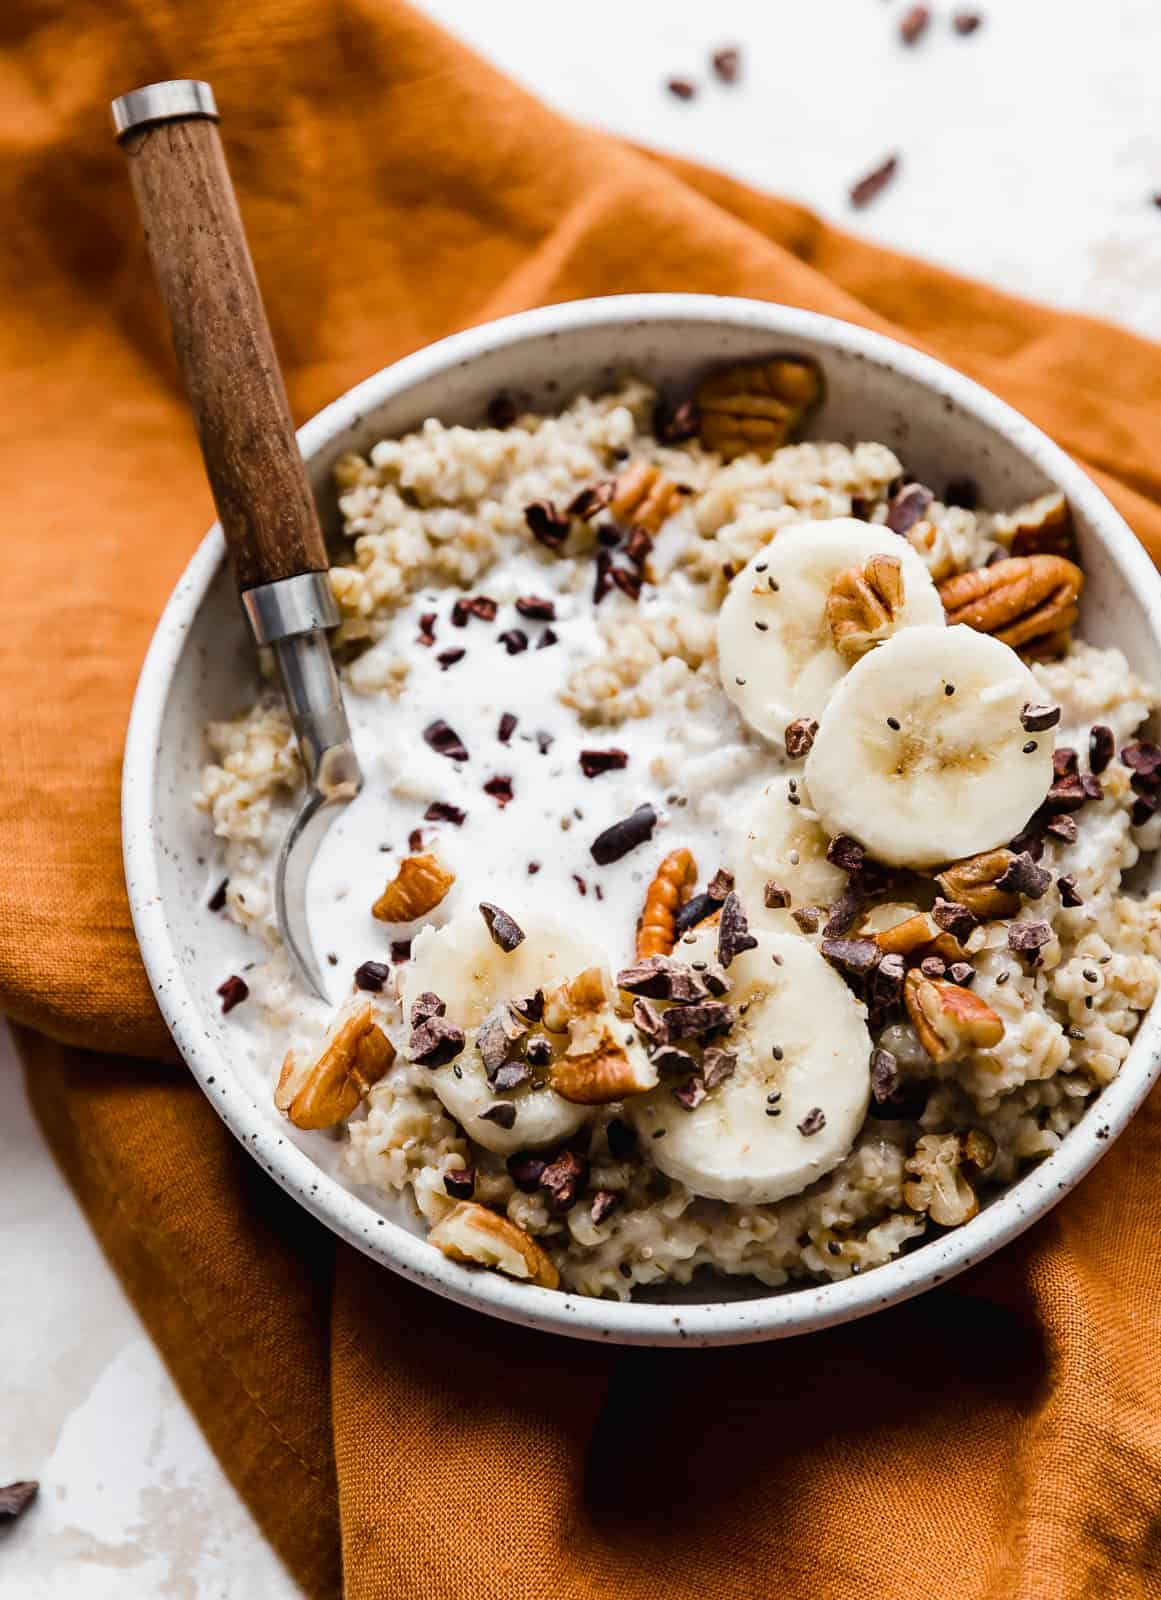 A bowl of steel cut oats on top of an amber colored napkin.